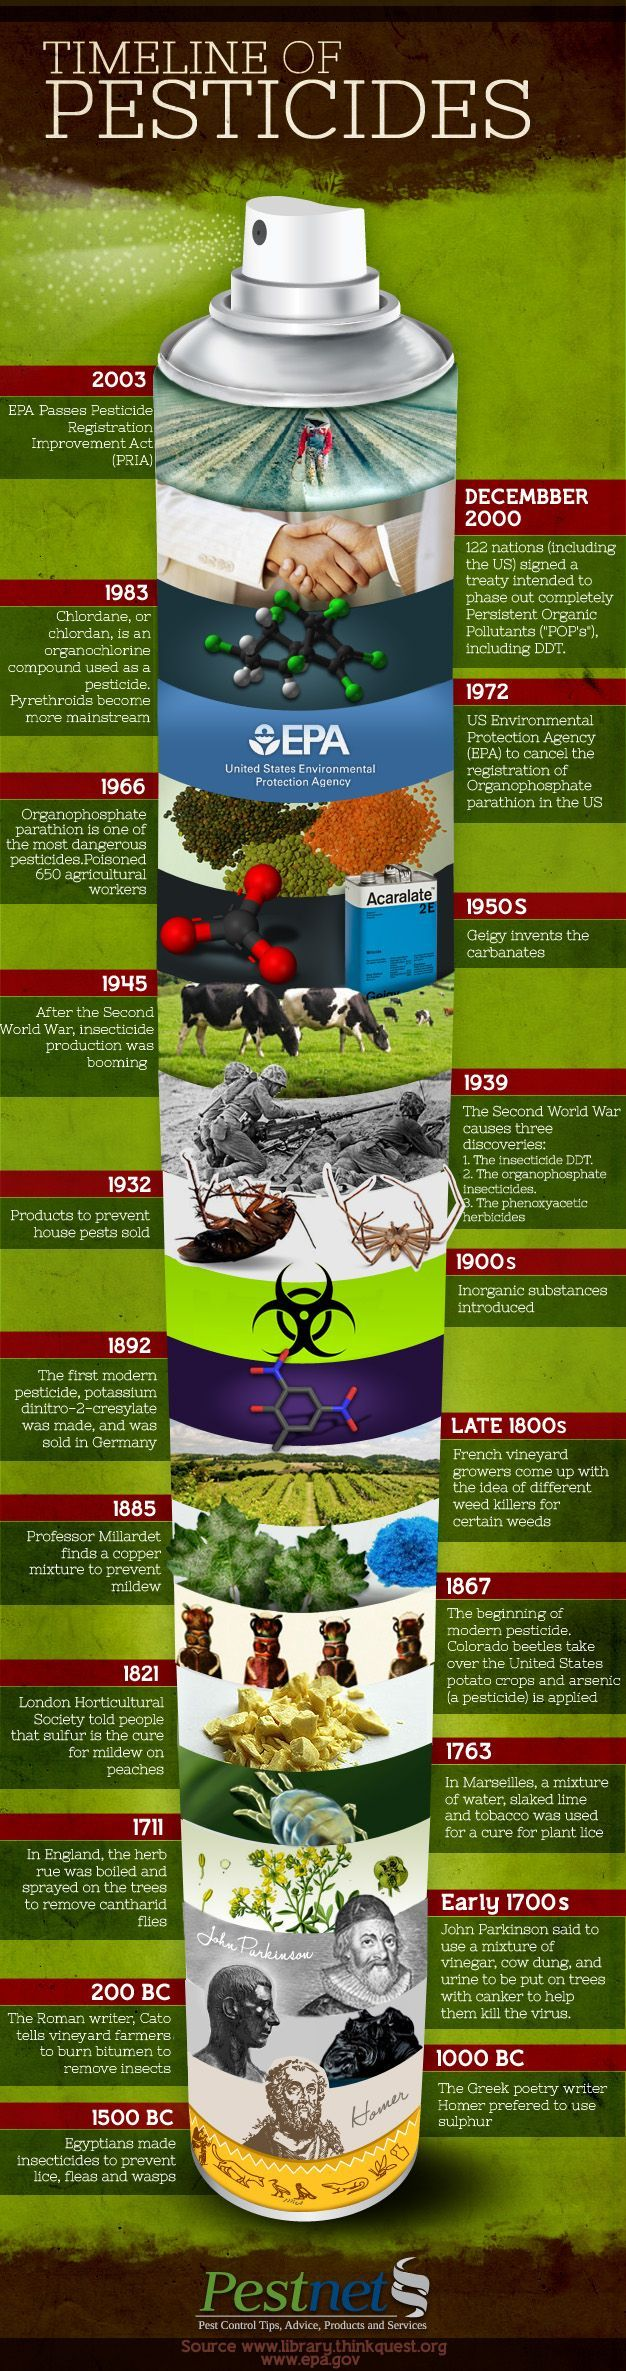 Pesticides have been used for ages. How and why?   This timeline shows how pesticides have evolved #survivalife www.survivallife.com